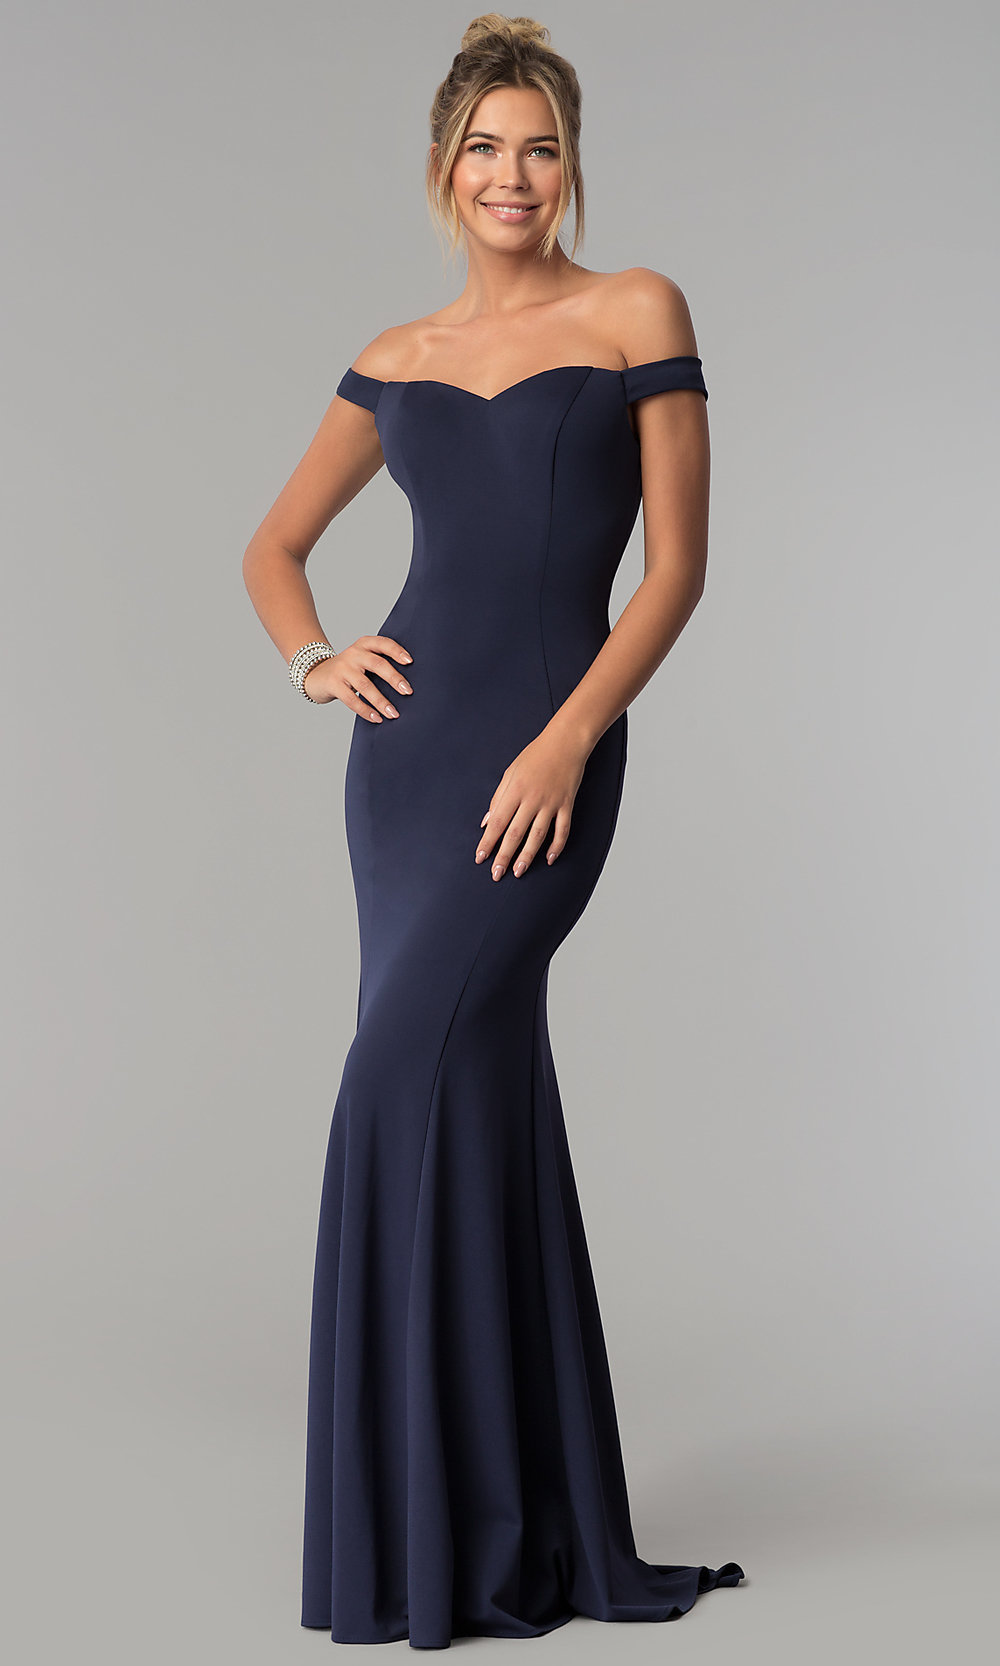 70f79b77a4 Off-the-Shoulder Long Formal Dress with Mermaid Skirt